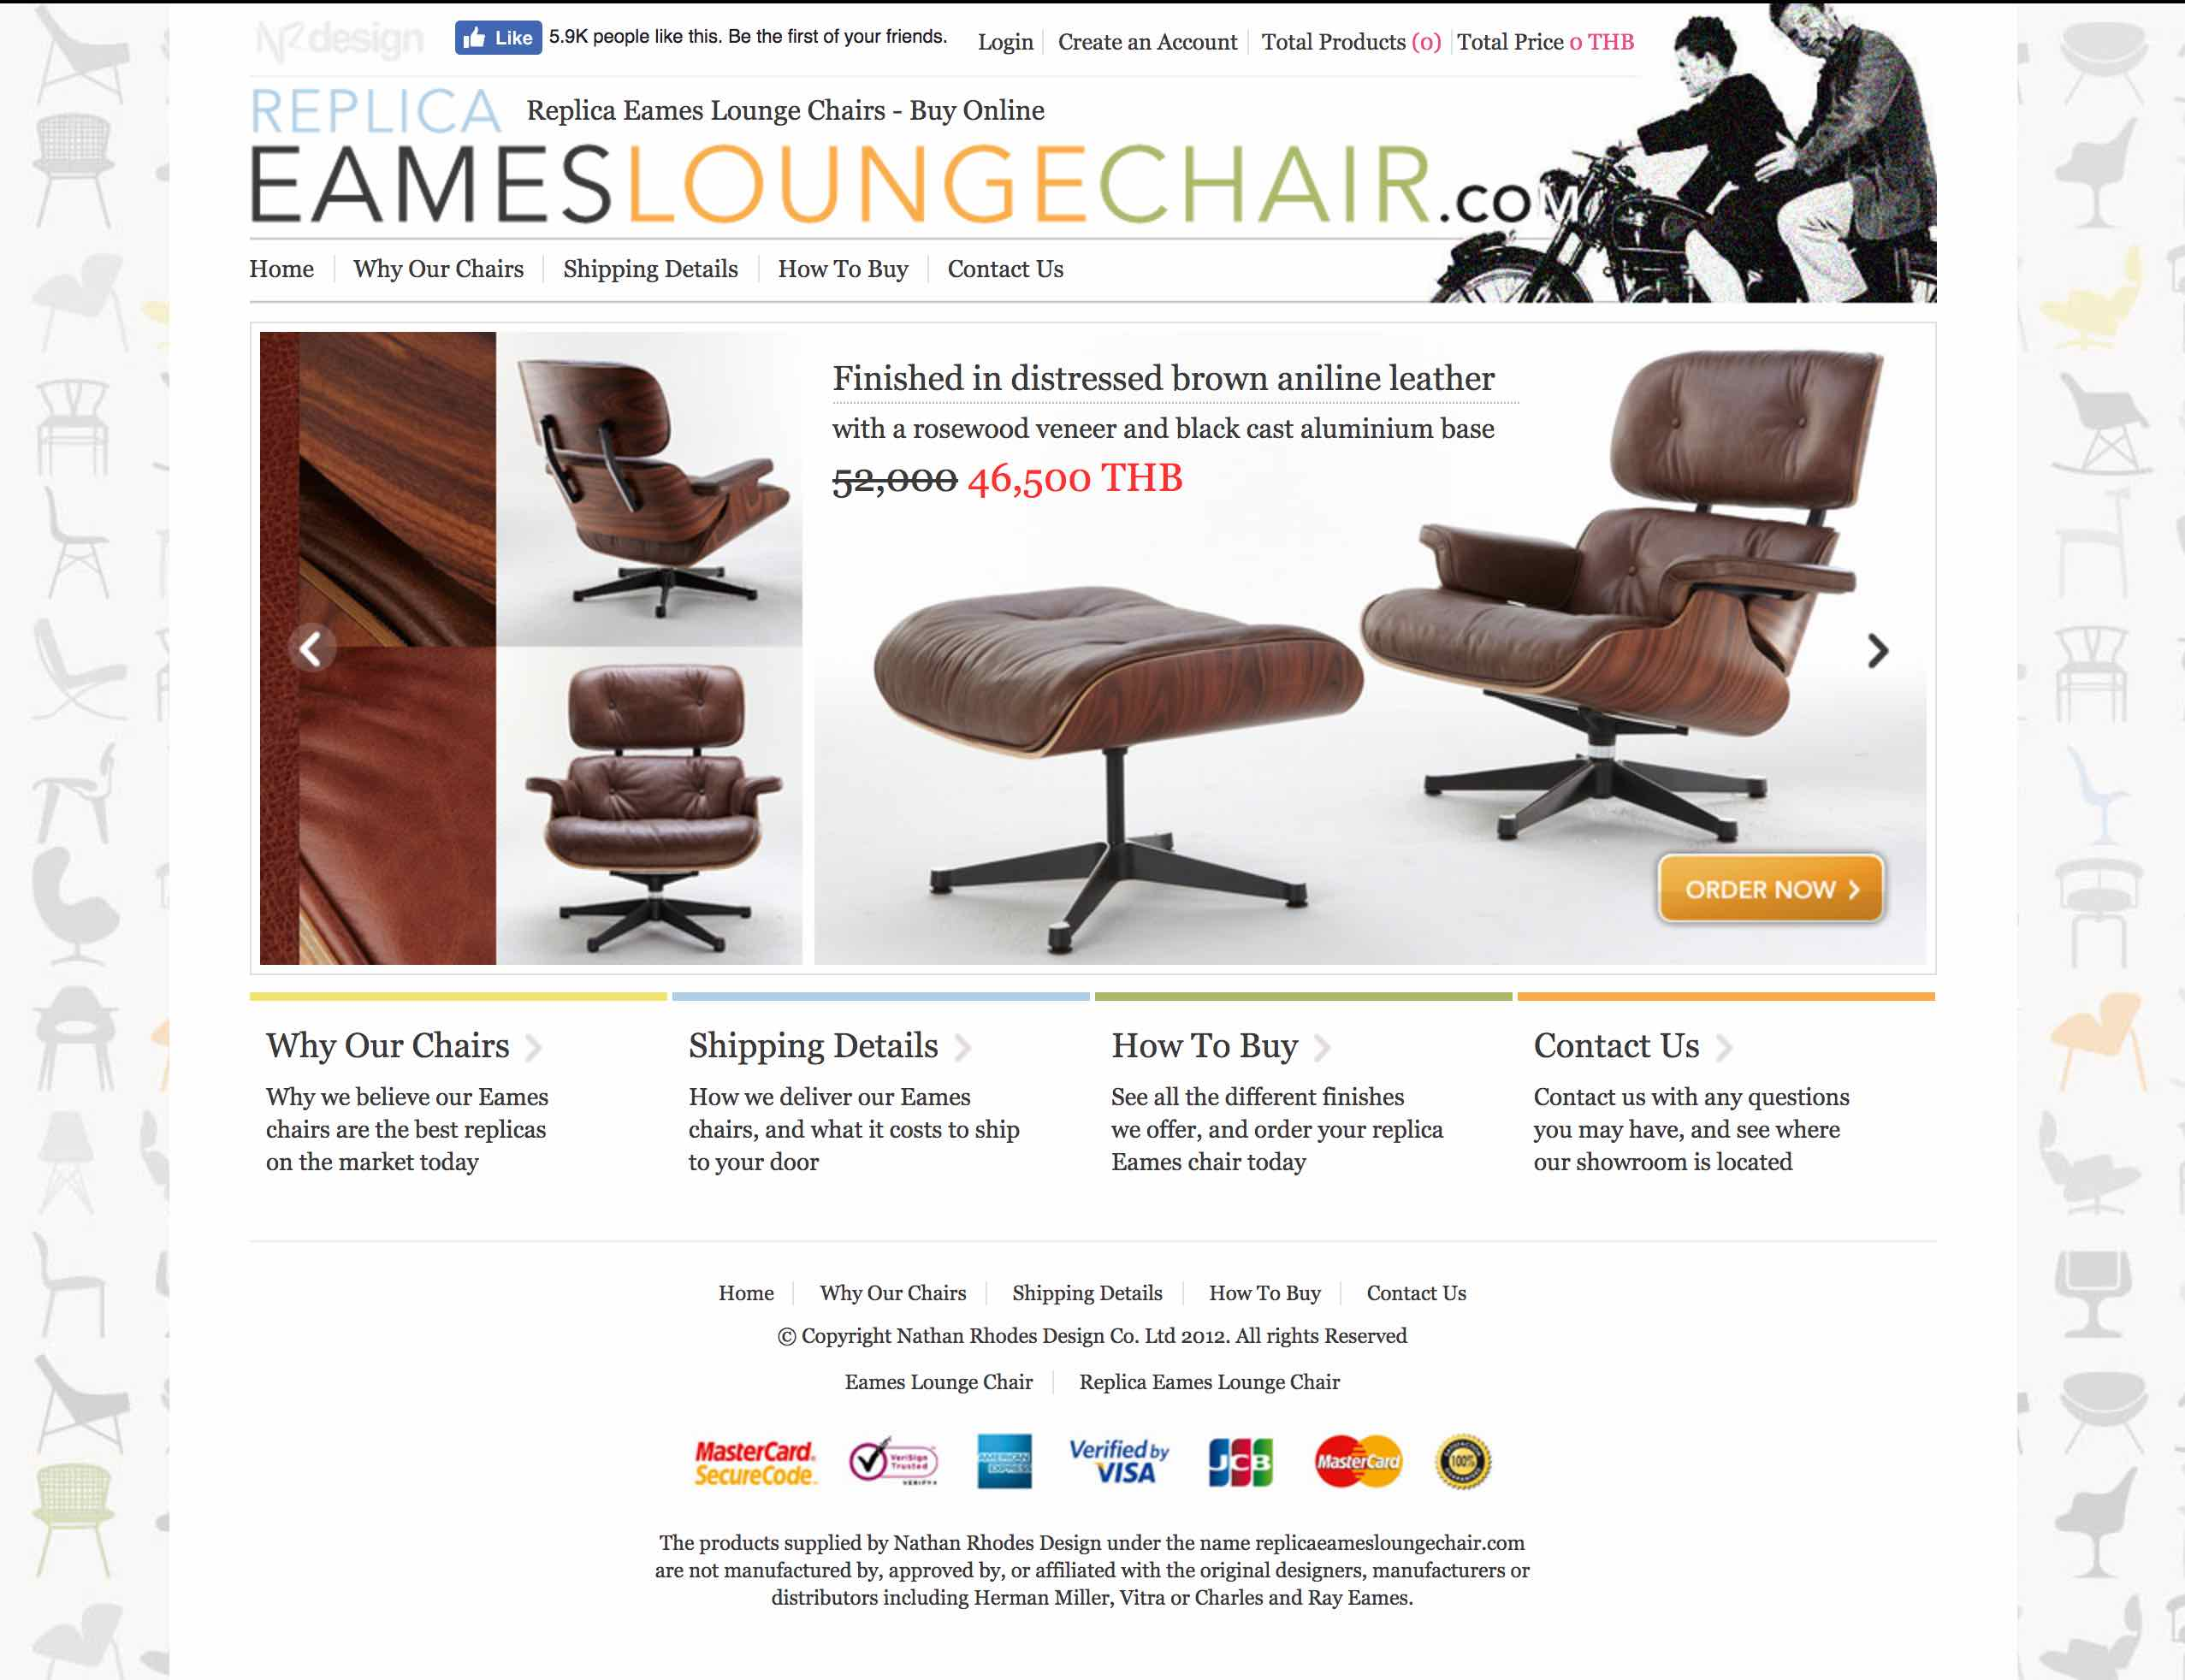 Eames Lounge Chair Image